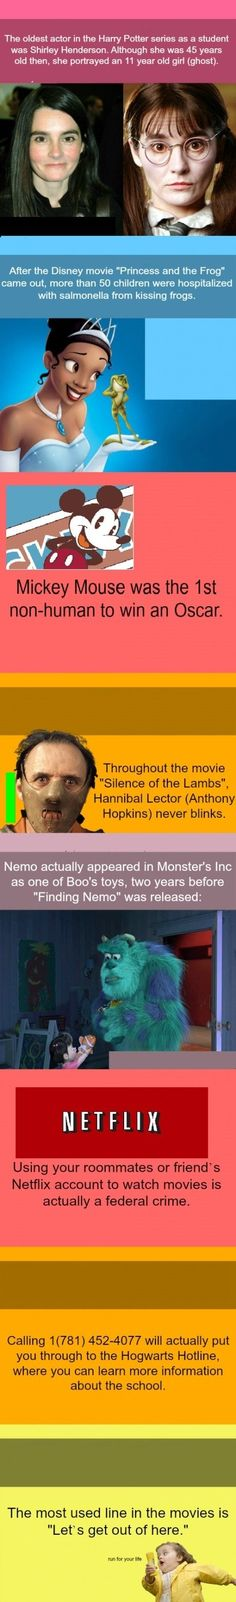 I knew there was something weird about Silence of the Lambs. Anthony Hopkins you creepy little shit.